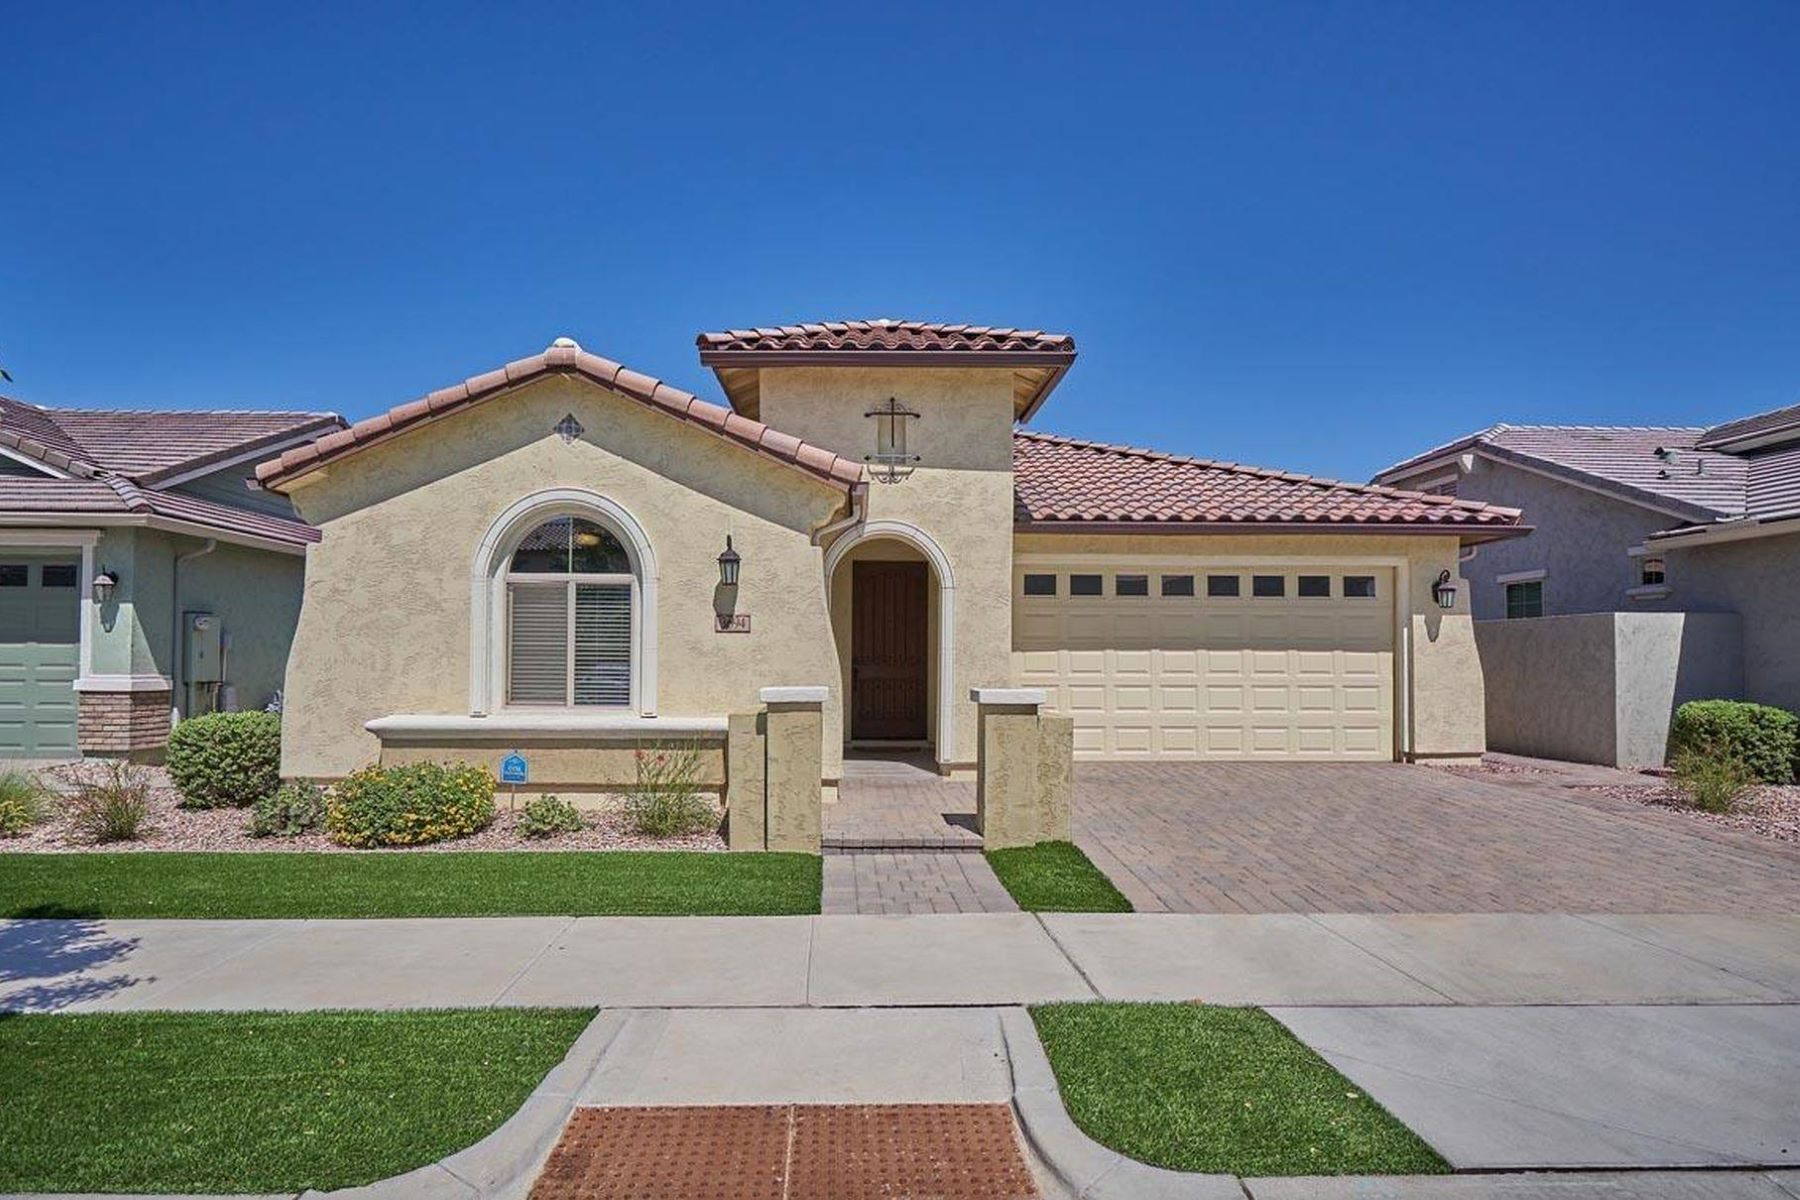 Single Family Homes for Sale at Cooley Station 3694 E PERKINSVILLE ST Gilbert, Arizona 85295 United States